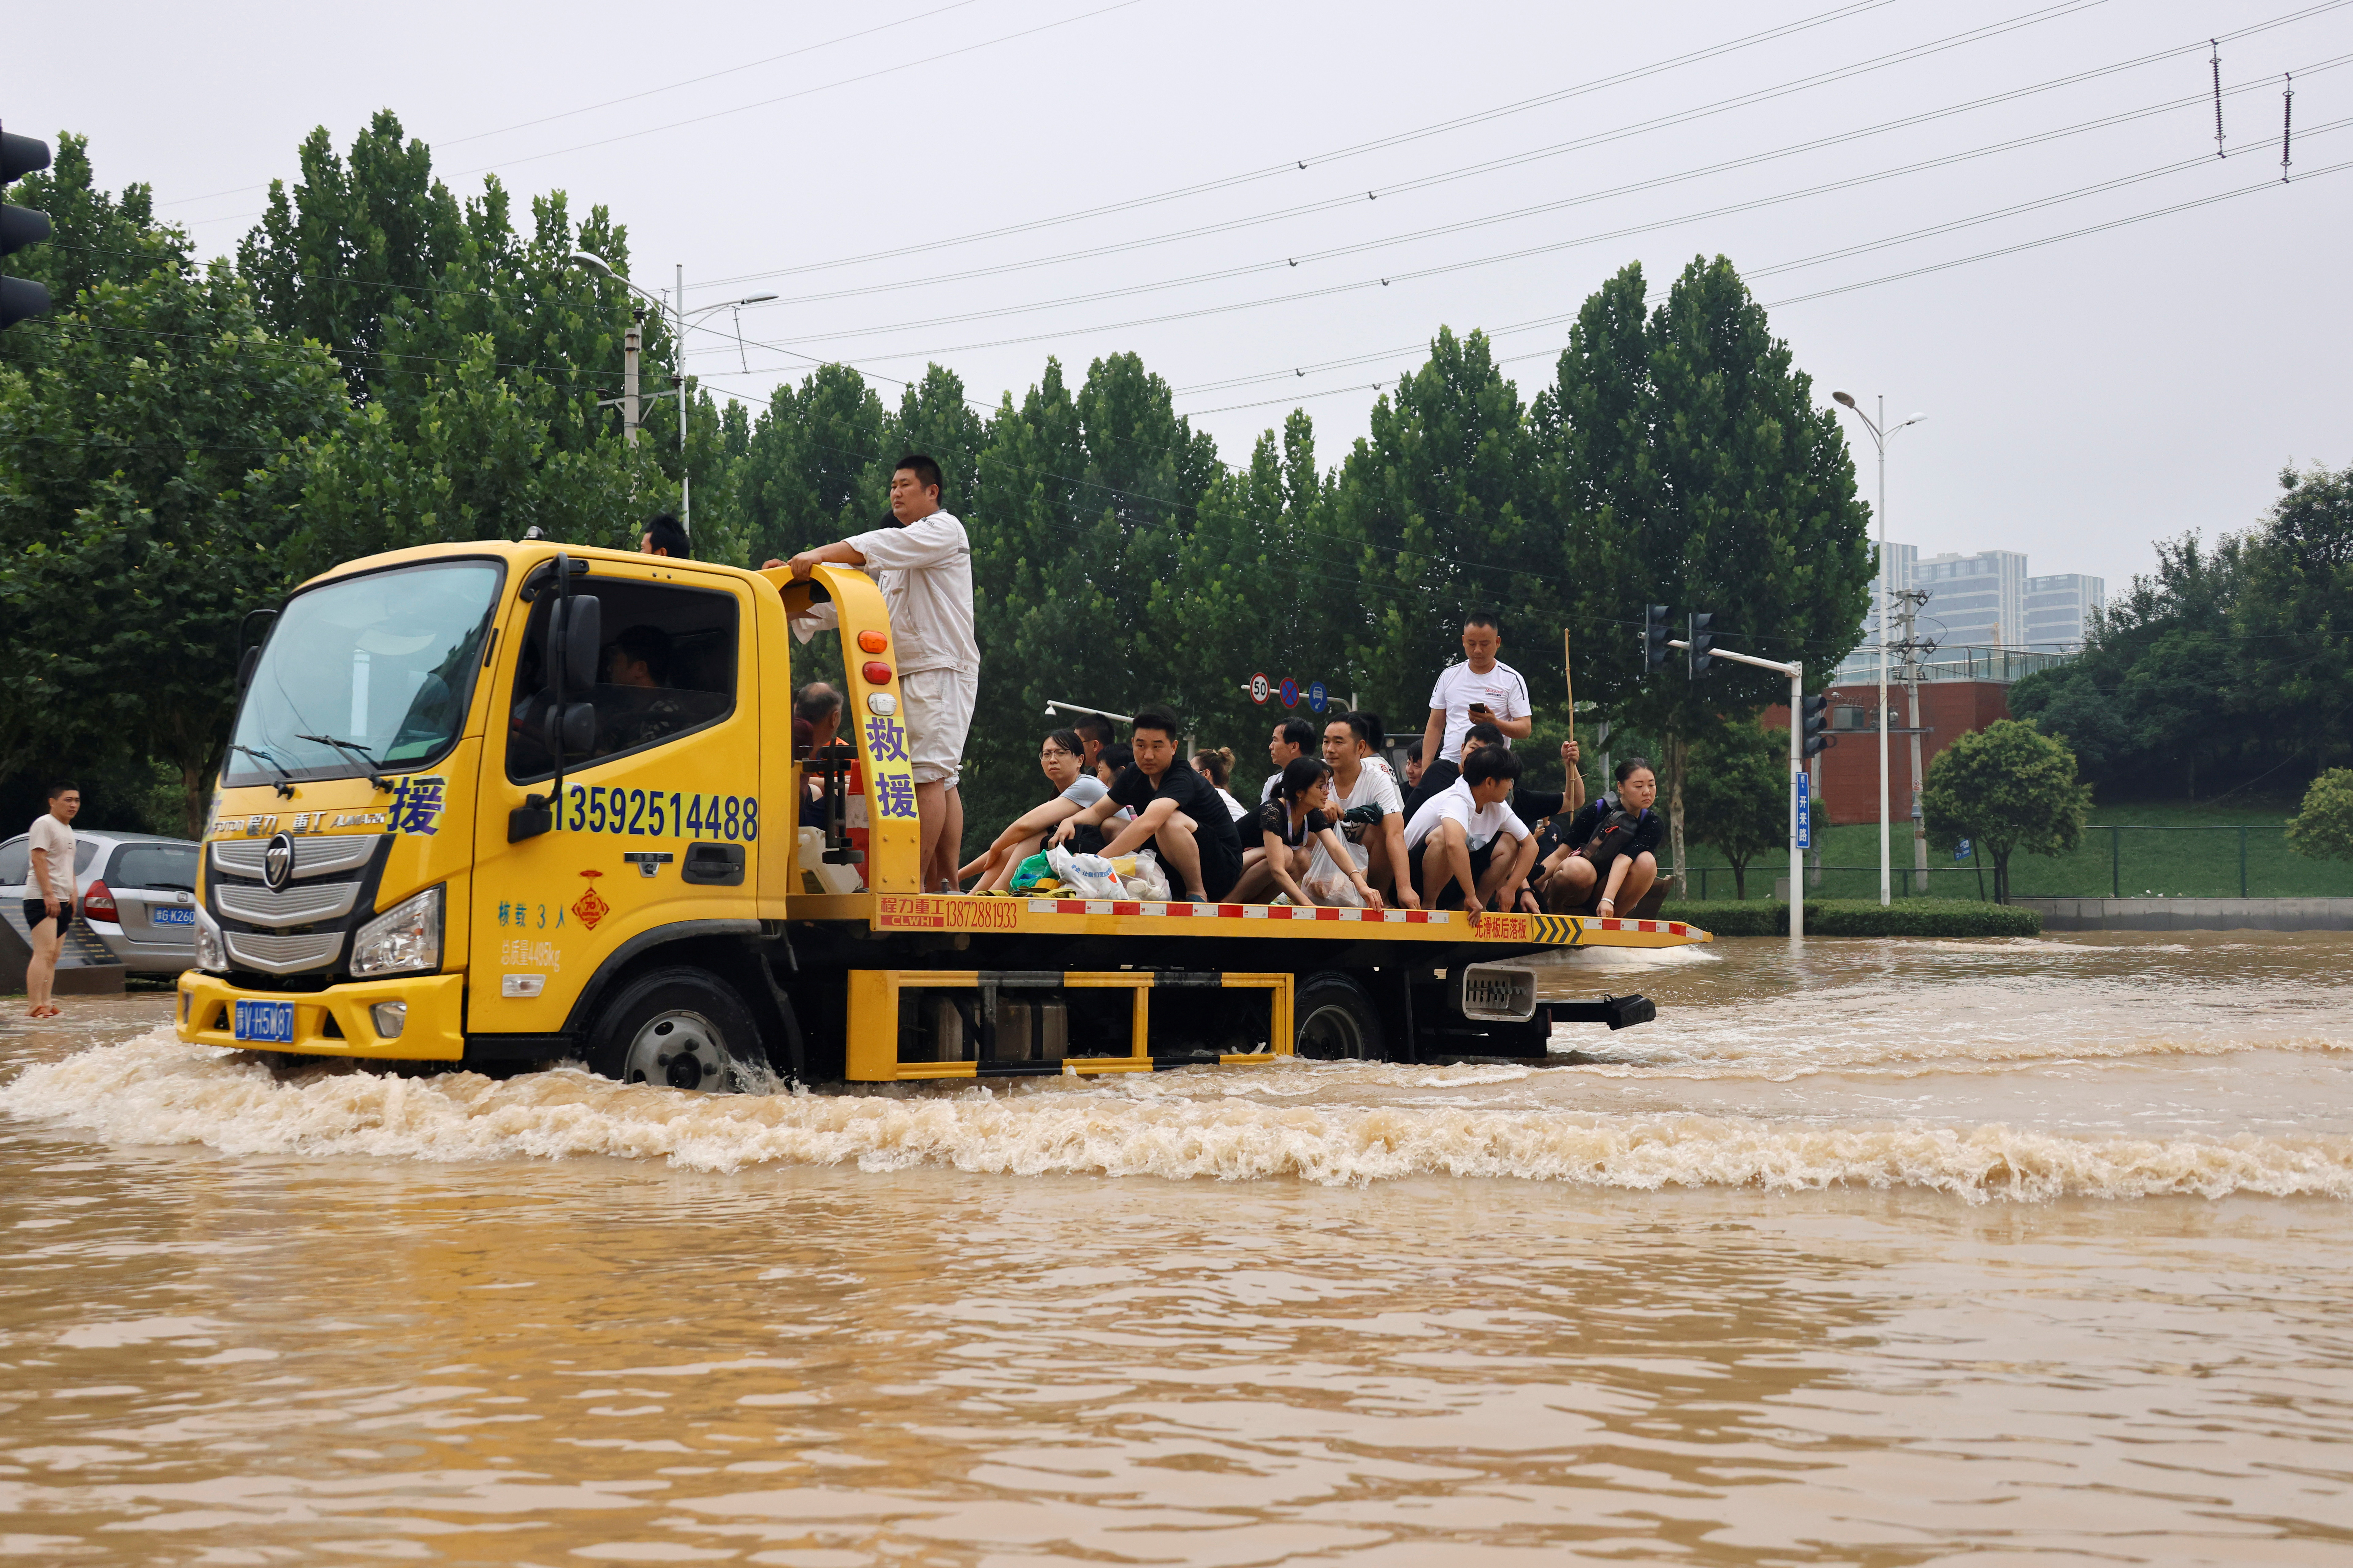 People ride on the back of a truck as they make their way through floodwaters following heavy rainfall in Zhengzhou, Henan province, China July 23, 2021. REUTERS/Aly Song